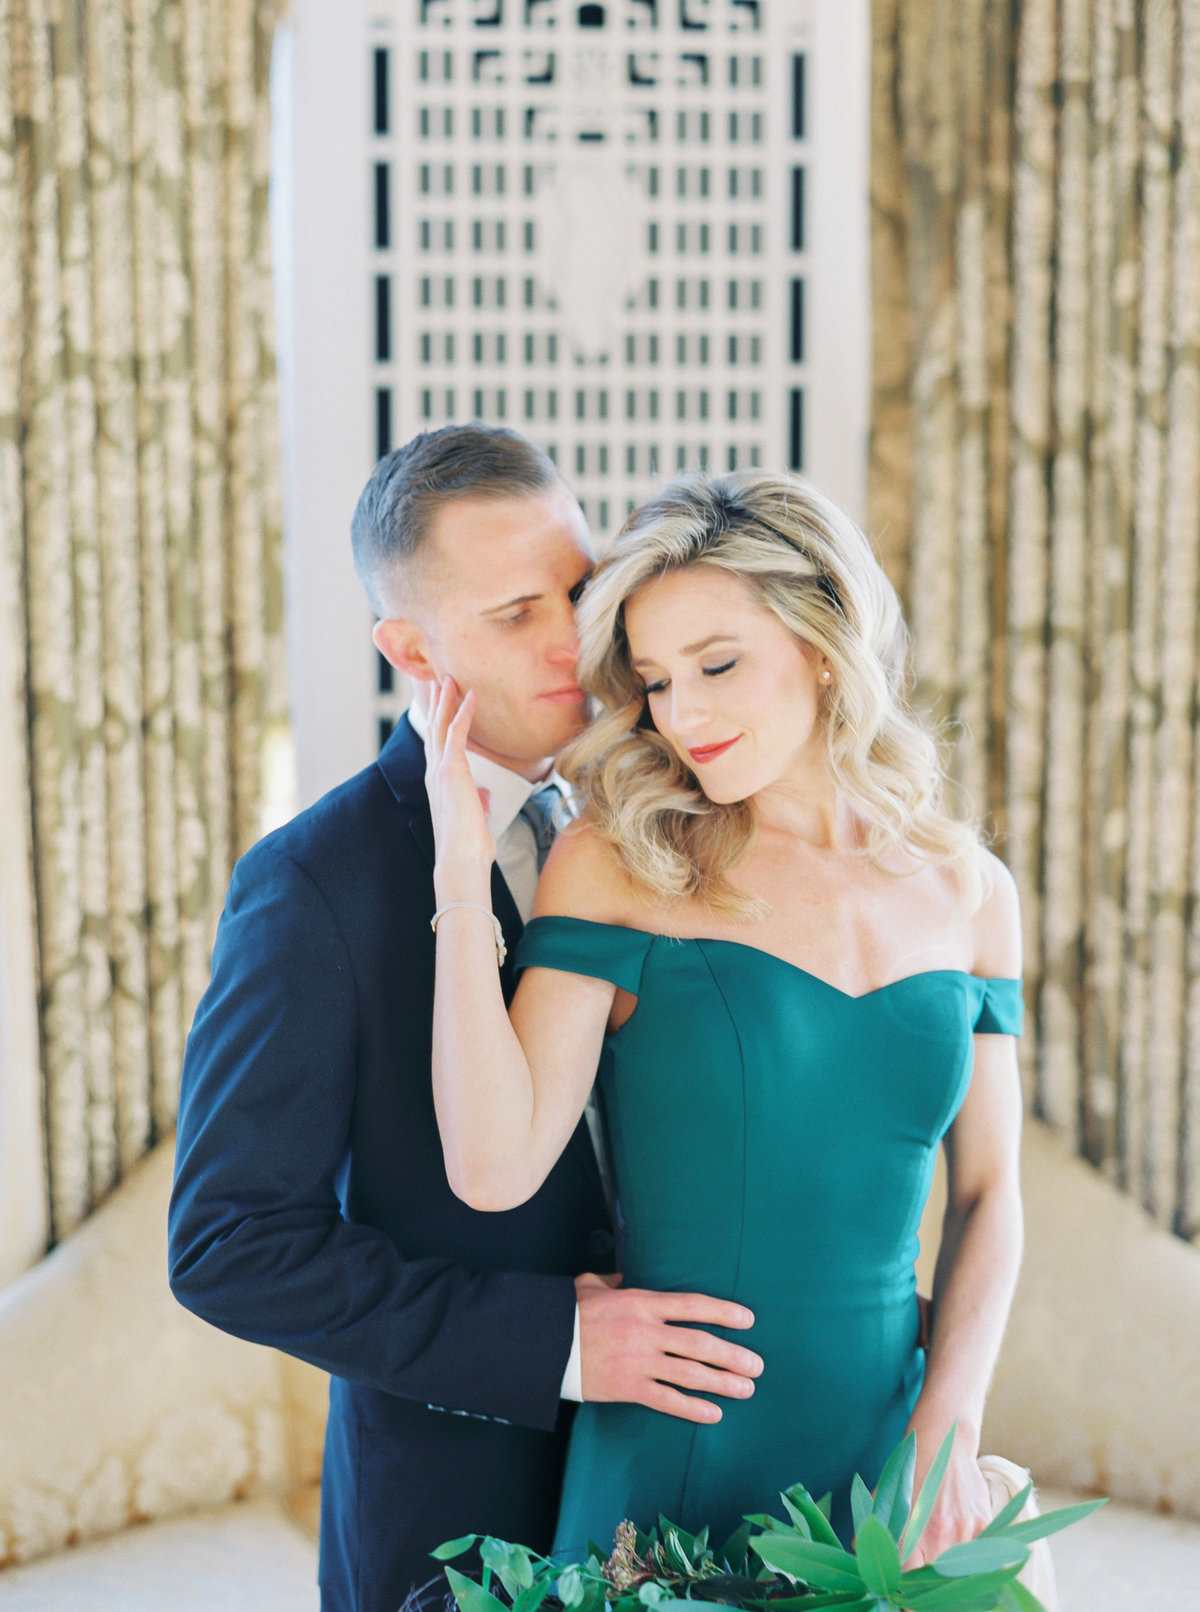 TiffaneyChildsPhotography-ChicagoWeddingPhotographer-Caitlin+Devin-CuneoMansionEngagementSession-214